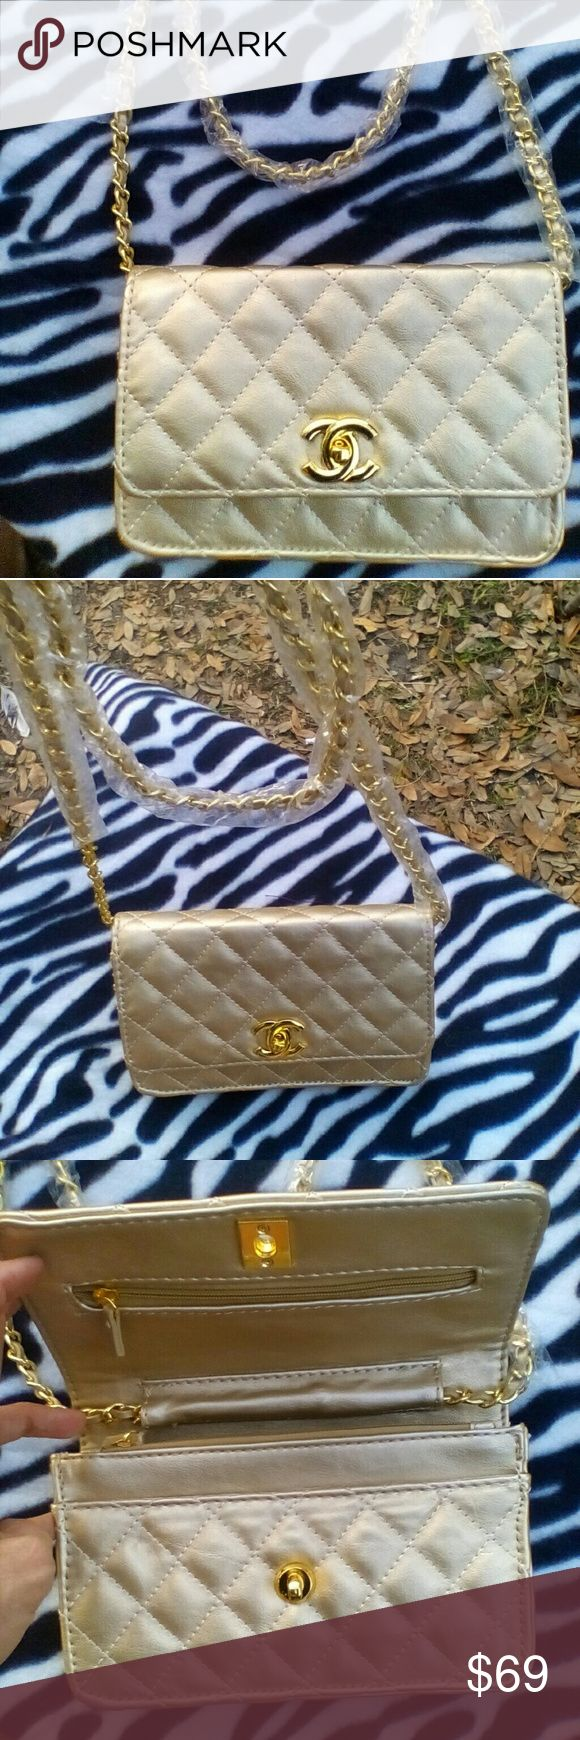 NWOT Gold C.hanel Mini Quilted Bag NWOT CUTE Chanel Mini Quilted Shoulder Bag. Chain Shoulder Strap still has plastic on it. Beautifully designer inspired. Price reflects auth.  Shop my closet for more deals. Bundle and save. Happy Poshing! Bags Shoulder Bags